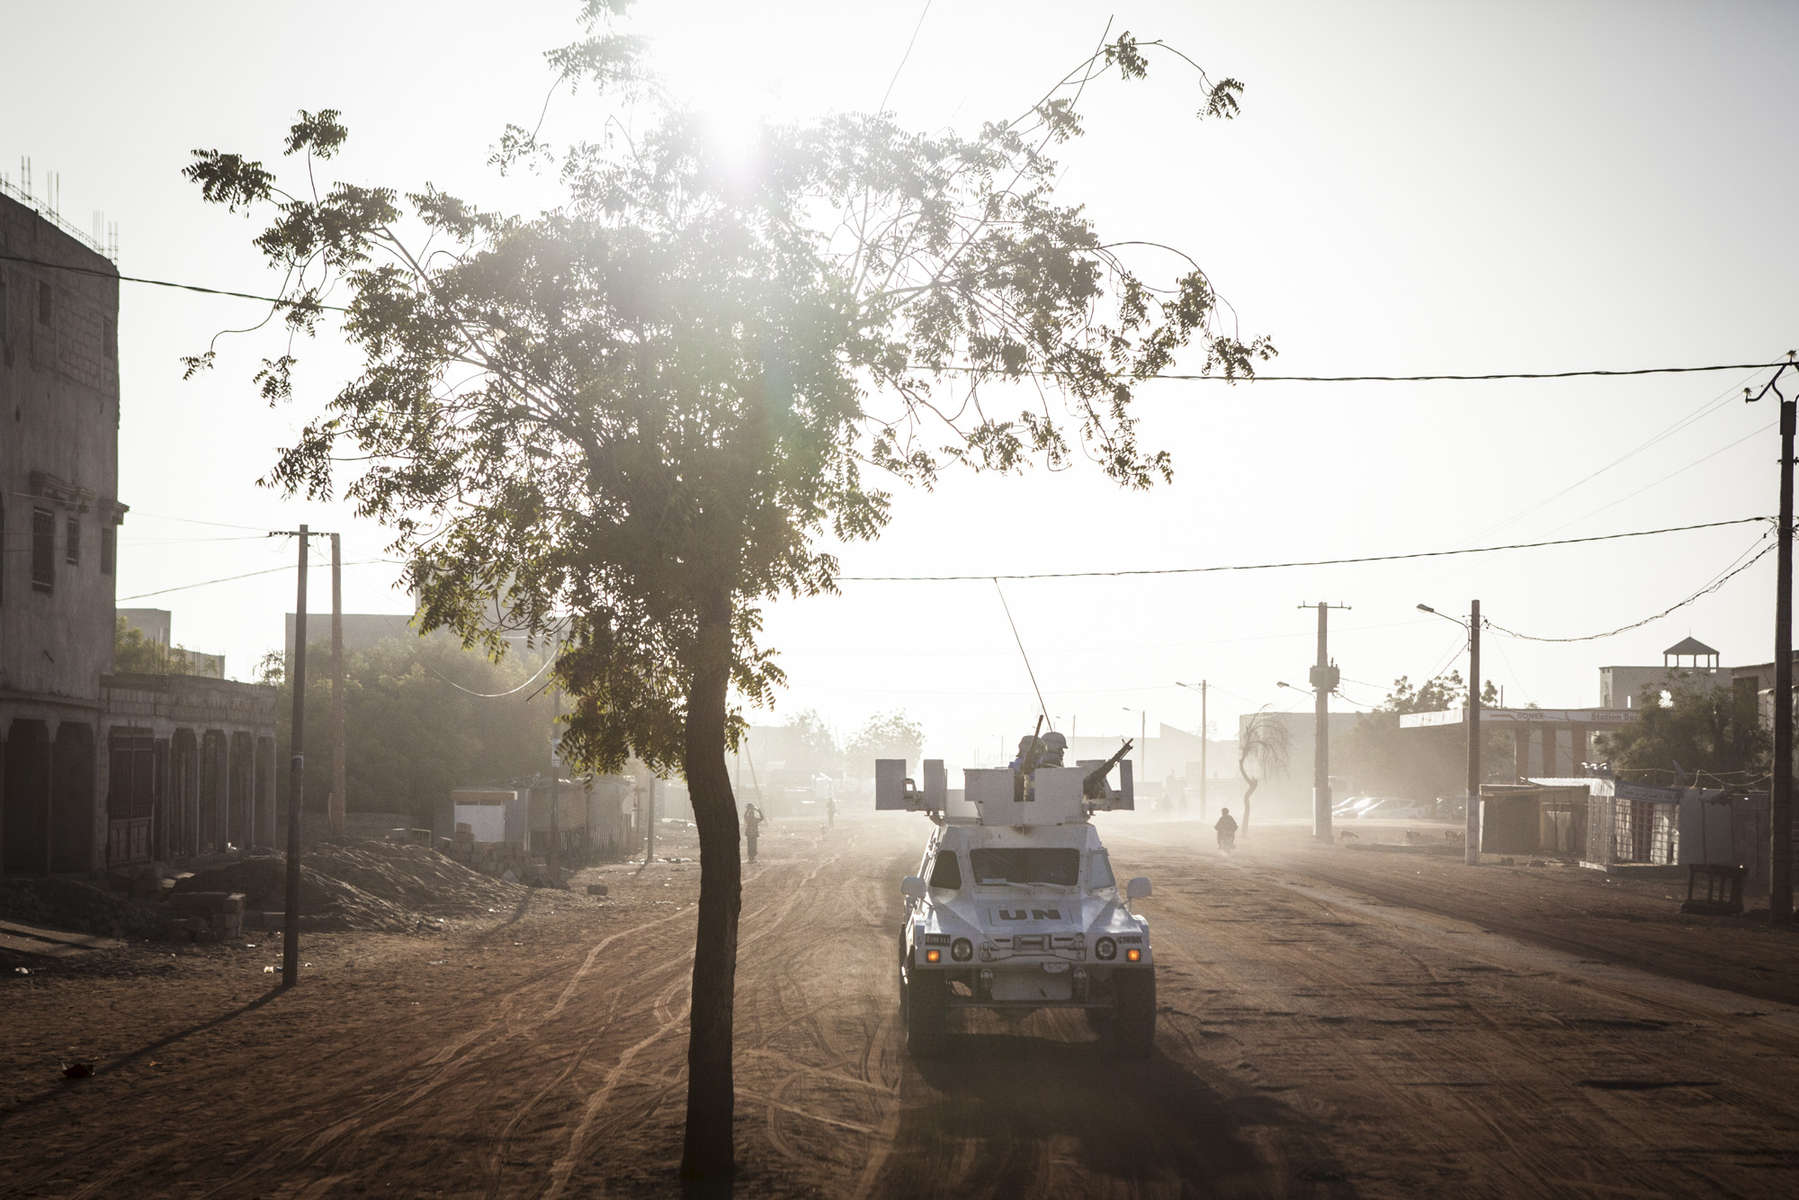 UN Peacekeepers from Senegal on an early morning patrol in Gao, Mali on Sunday, January 15, 2017. Despite the end of the occupation, many Malians find that security is still a major issue speaking of incidents of car jacking and looting. Even though crime is high, most of the deadly attacks that occur are against the United Nations Minusma mission, Malian soldiers and the French military.